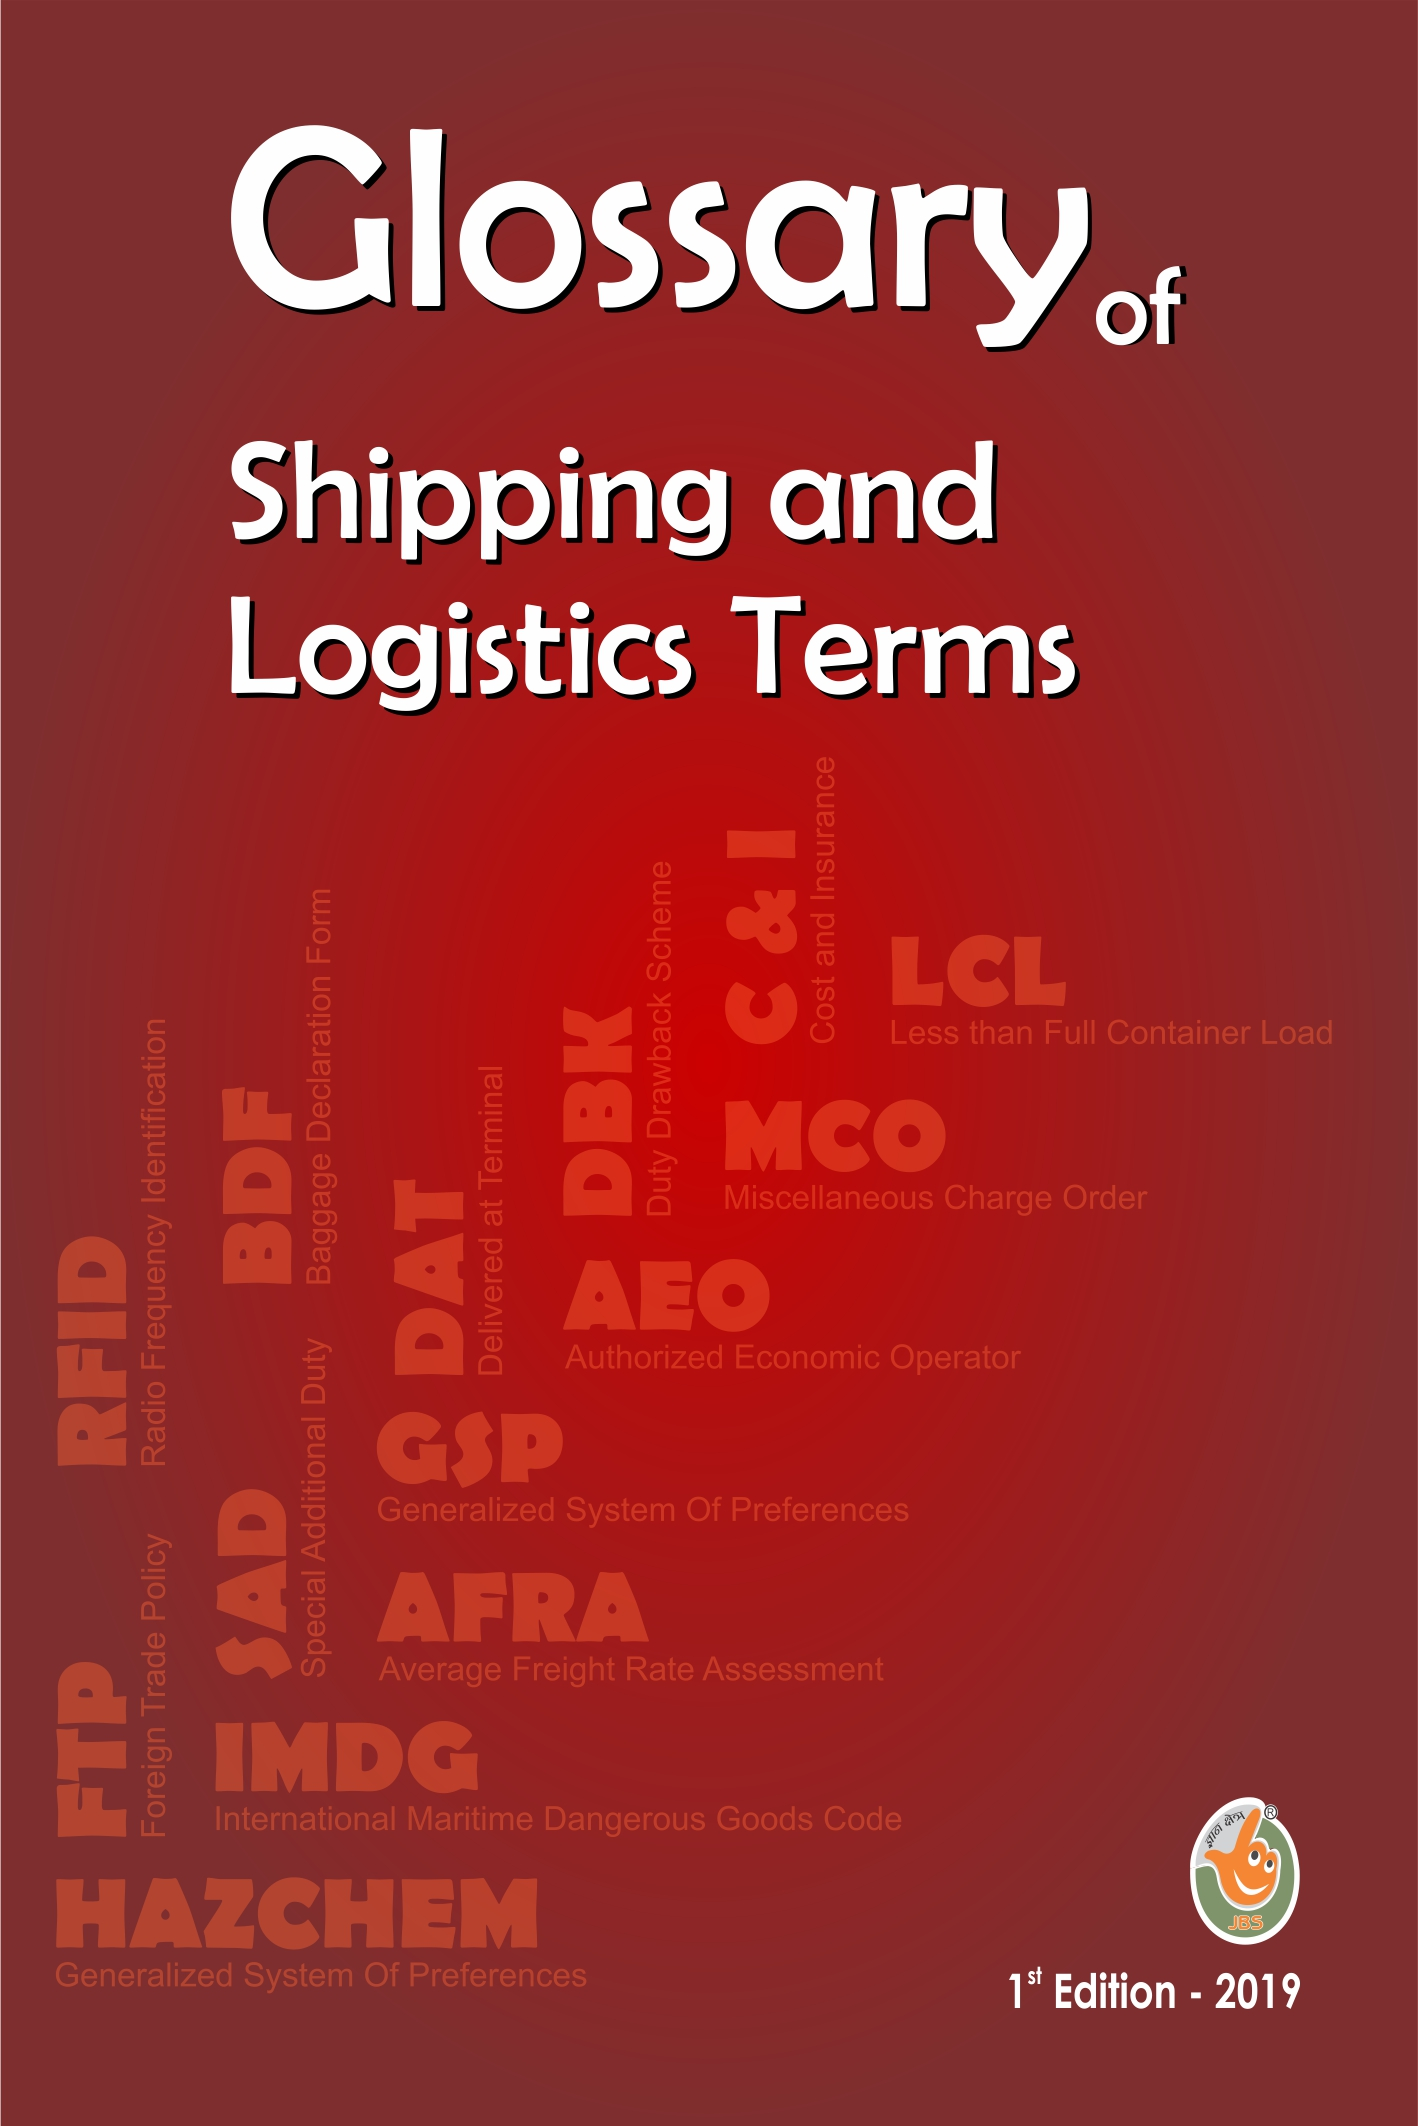 Glossary of Shipping and Logistics Terms